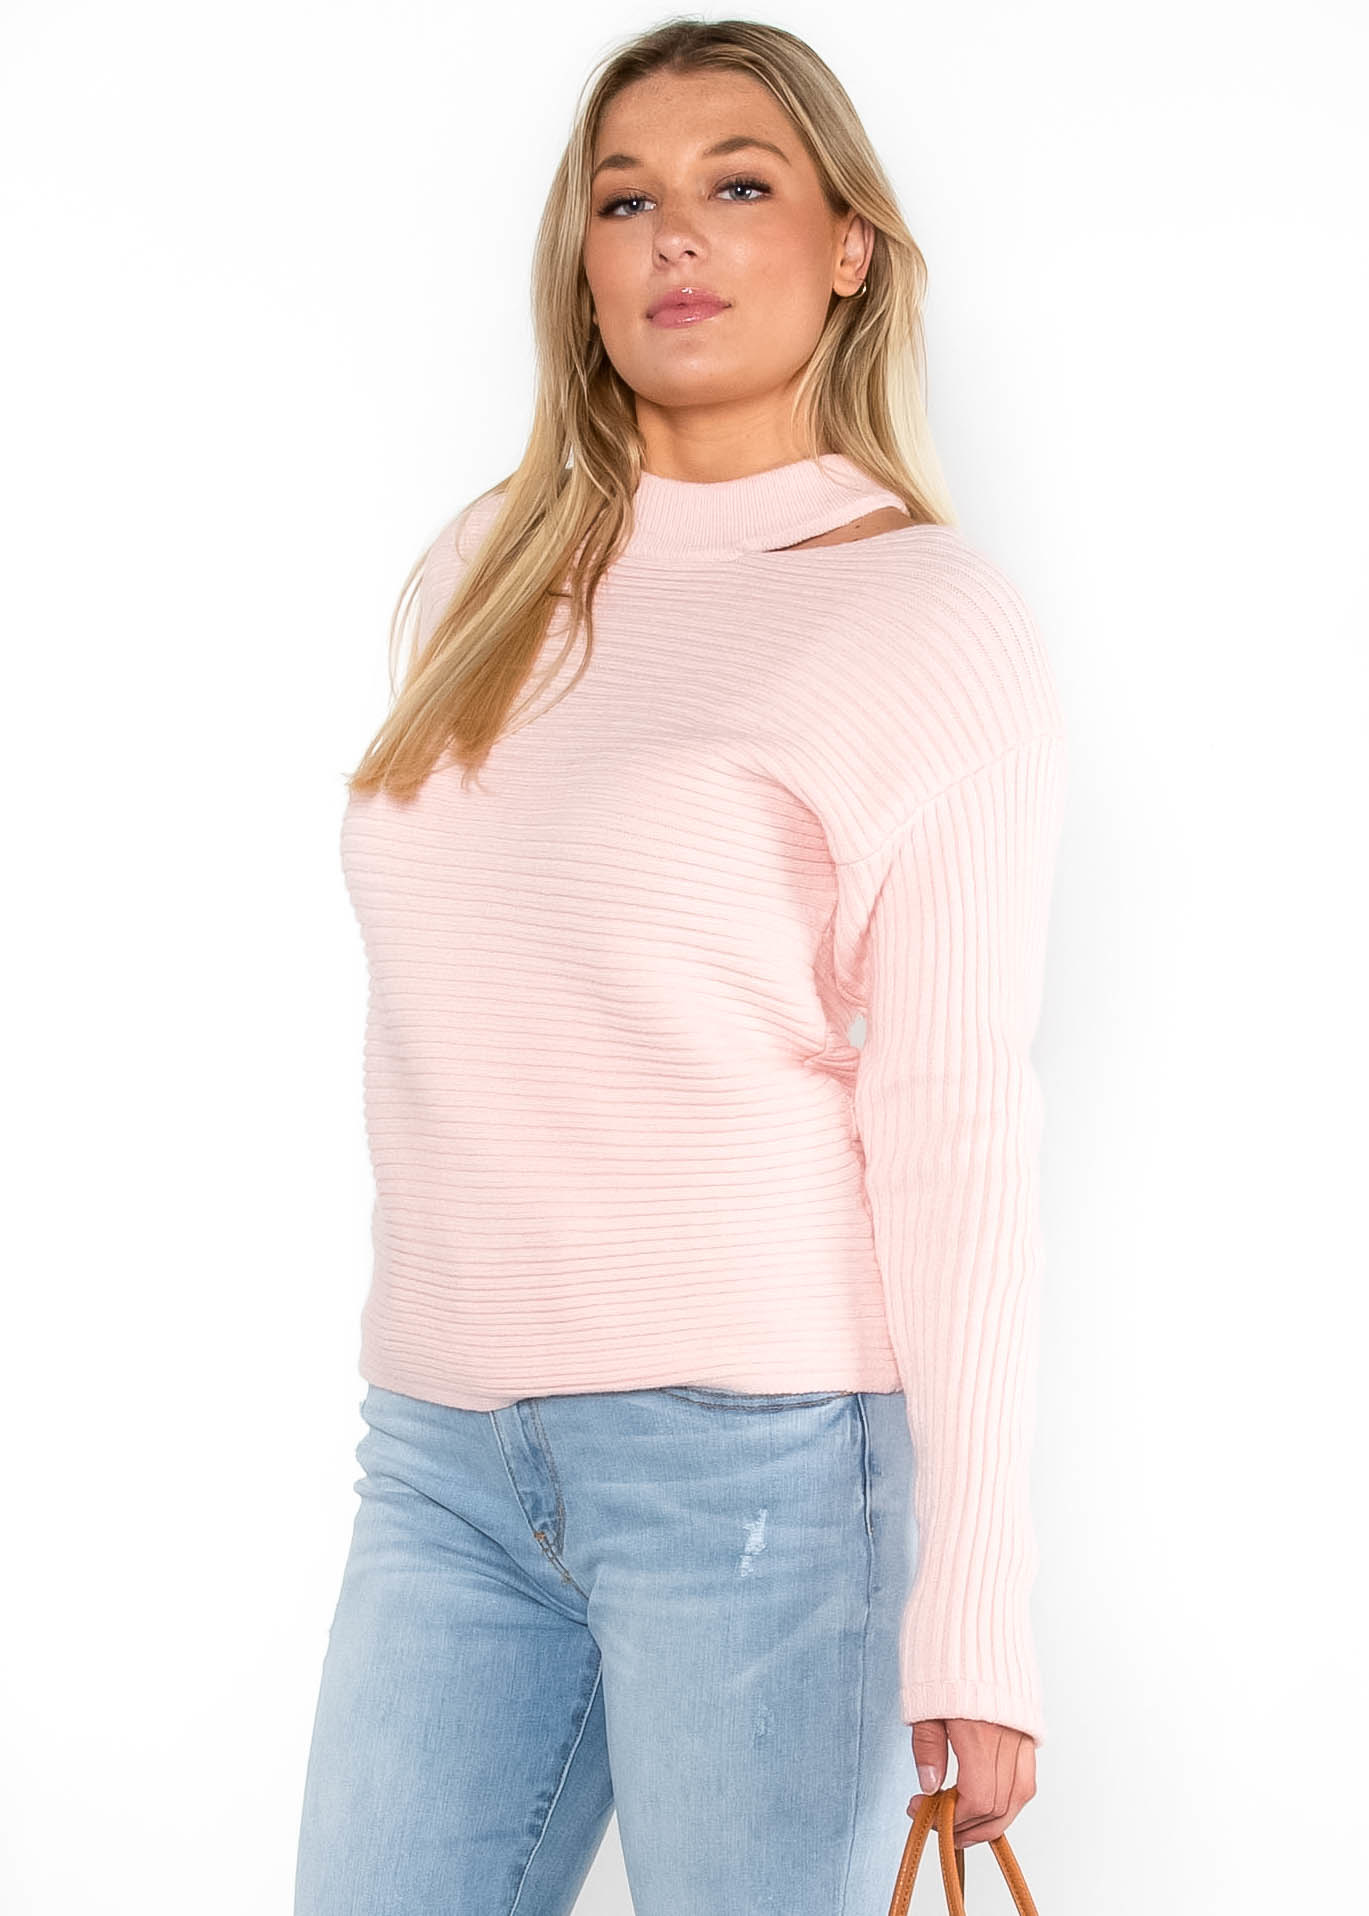 SOMEBODY TO LOVE SWEATER - PINK